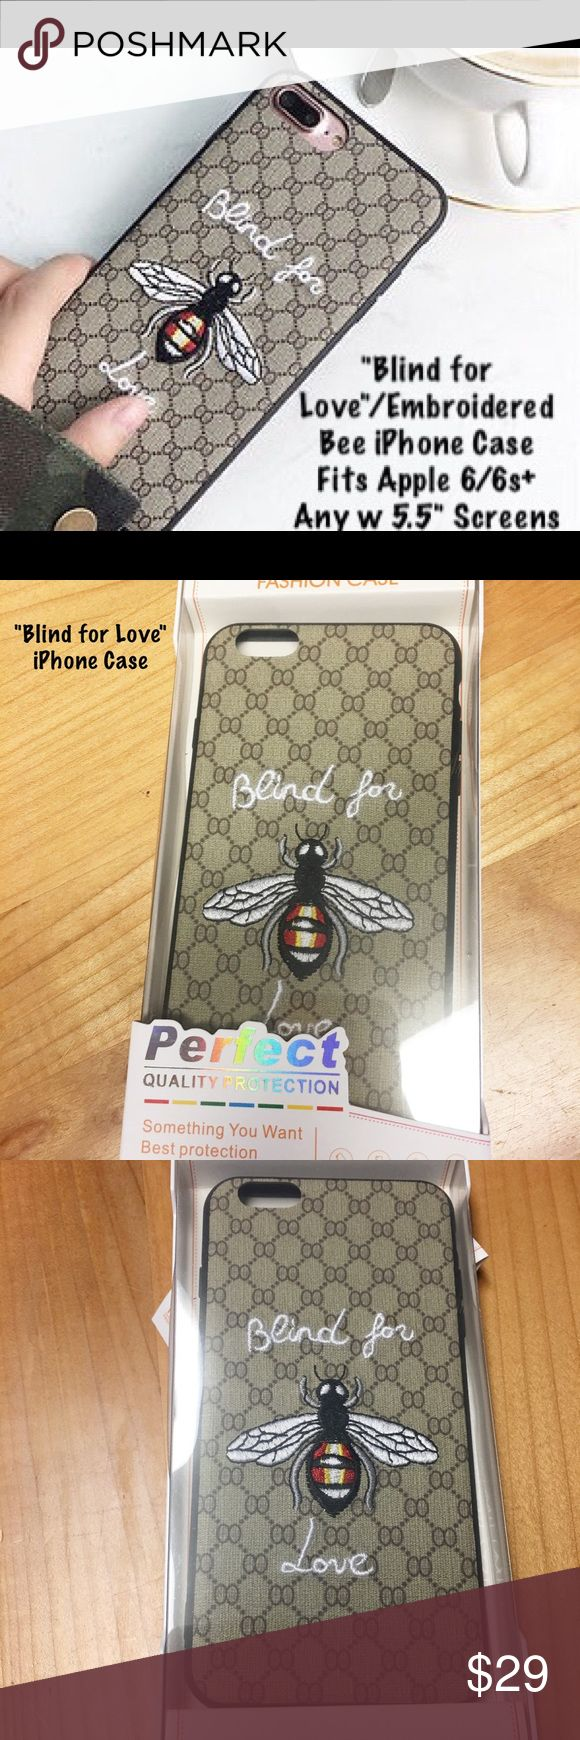 "🆕 Nip/""Blind for Love"" Embroidered iPhone 6/6s+ 🆕 Listing/Nip/Fashion iPhoneCase/""Blind for Love"" Embroidered iPhone Case for Apple iPhone 6/6s+ or any 5.5"" Screen iPhones. Fun/Flirty will be a conversation starter! Are you a ""Blind for Love"" Case Gal or Guy? Cloth w embroided Bee on the Cloth Patterned Fabric! My costs on these cases was a bit higher + Poshmark fees all reflected in pricing/Always open to Fair Offers/?'s please ask before purchase! Thank You! Tory's Timeless Treasures…"